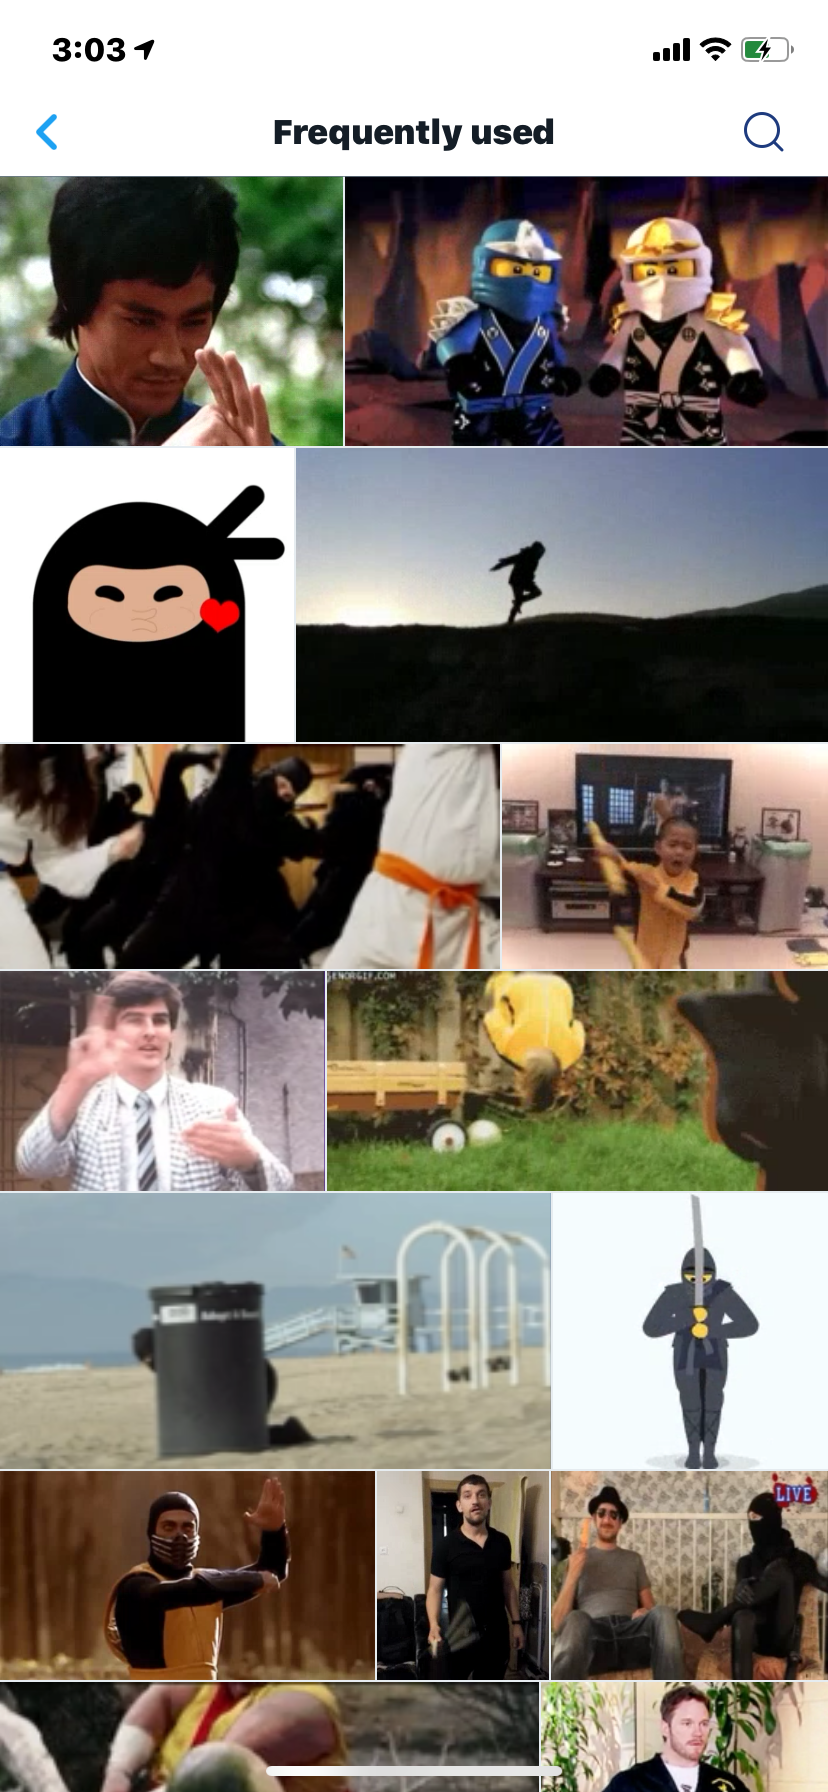 Screenshot of frequently used GIFs for @NinjaForms.